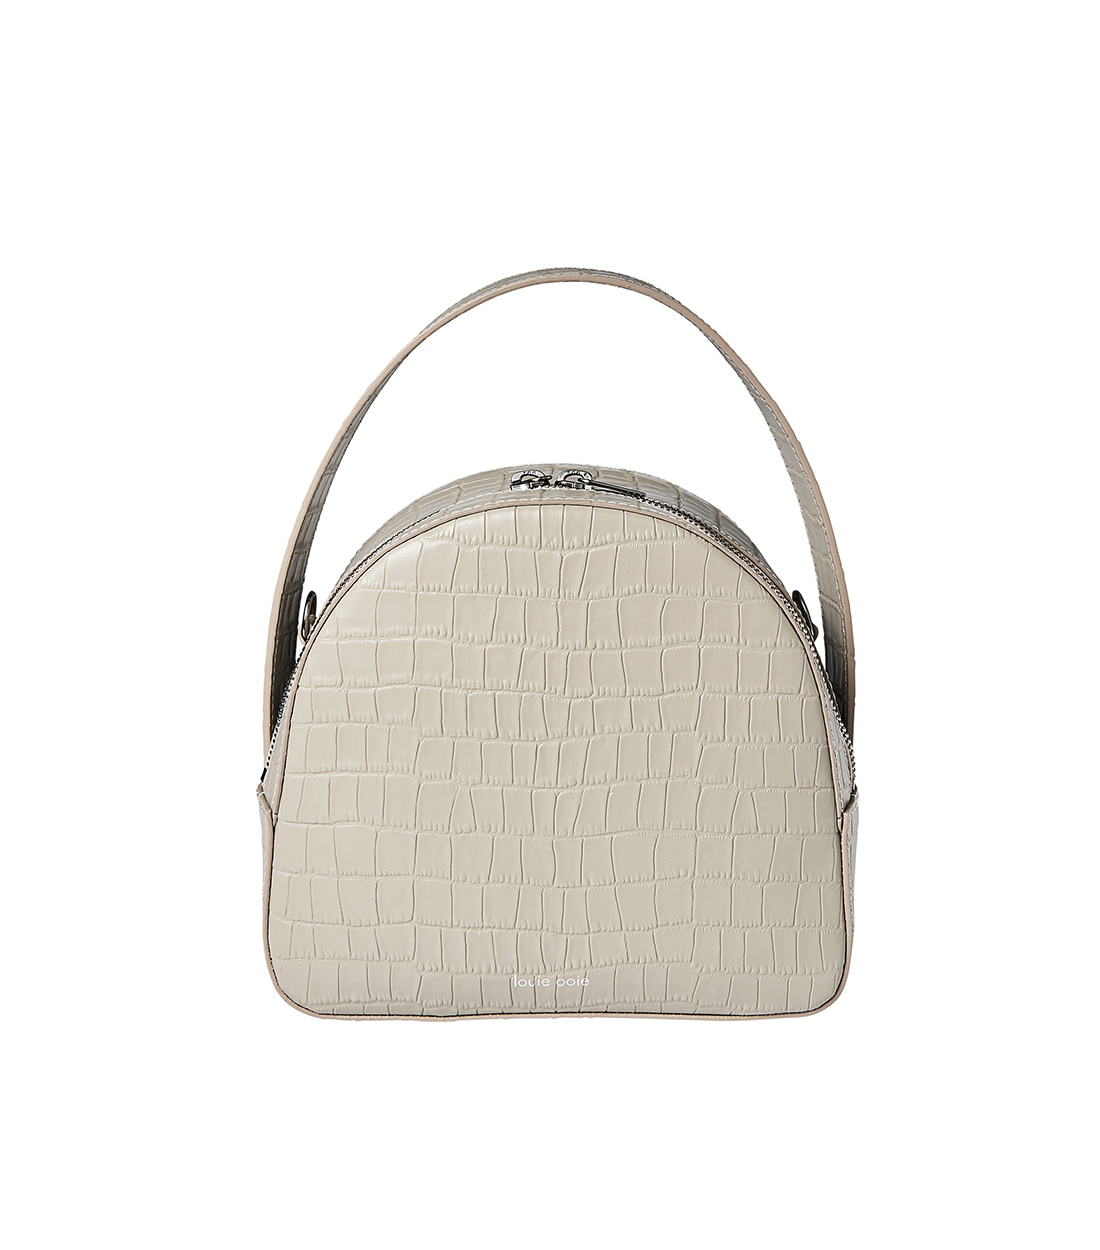 connee cross bag - beige embo